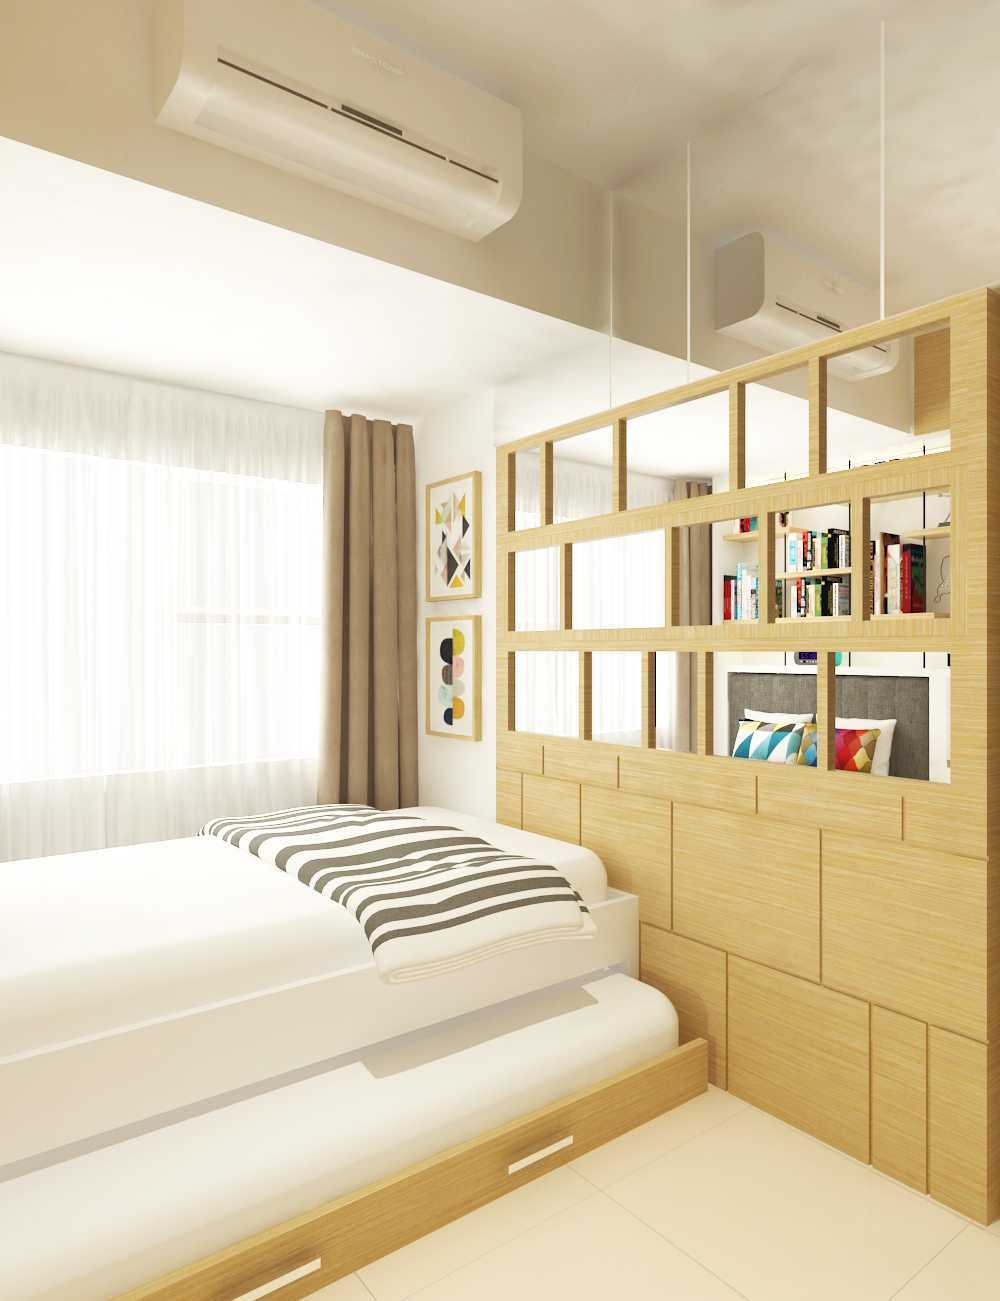 Miv Architects (Ar. Muhammad Ikhsan Hamiru, Iai & Partners) Interior Design Of Apartment Unit Makassar, South Sulawesi, Indonesia Makassar, South Sulawesi, Indonesia Apartment Room Design Skandinavia 29132